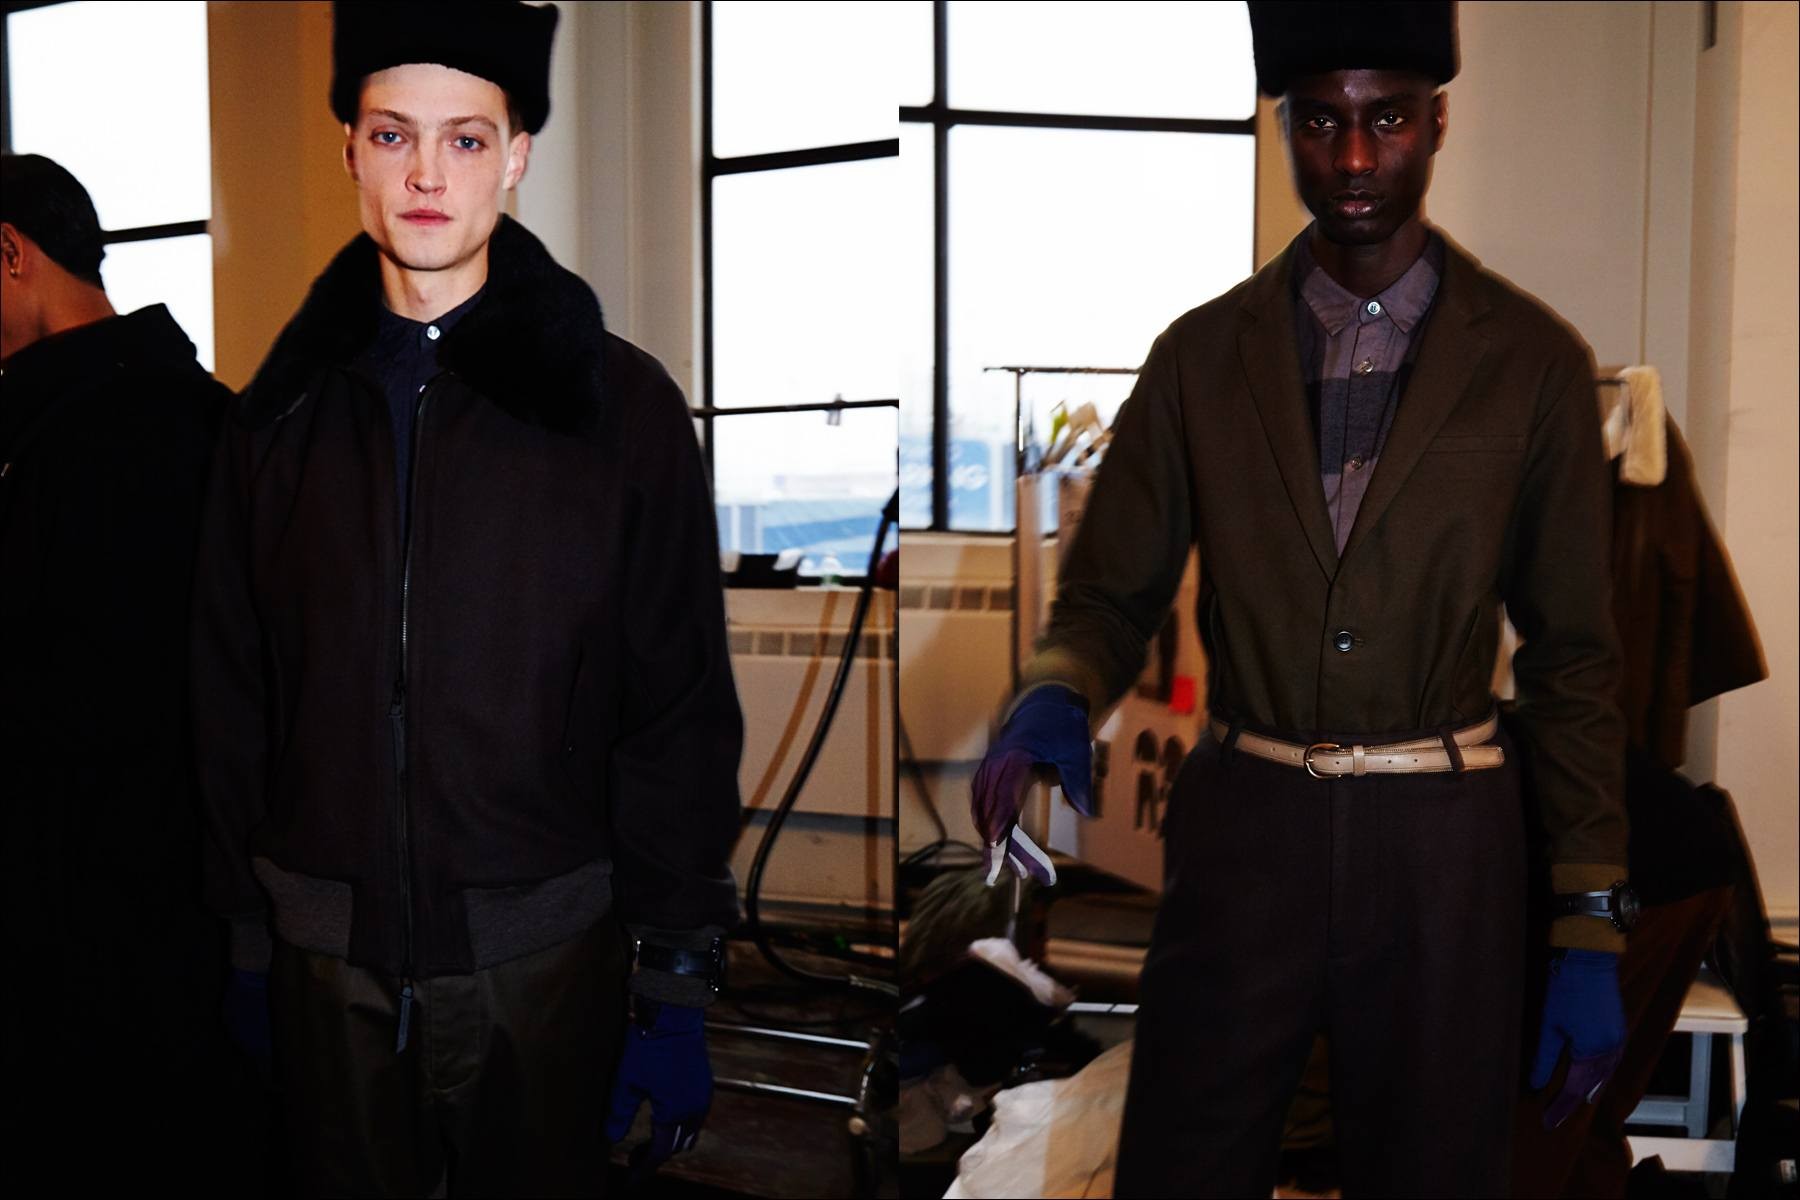 Models Dane Bell & Aly N'Diaye photographed backstage at Robert Geller A/W17 menswear show. Photography by Alexander Thompson for Ponyboy magazine New York.